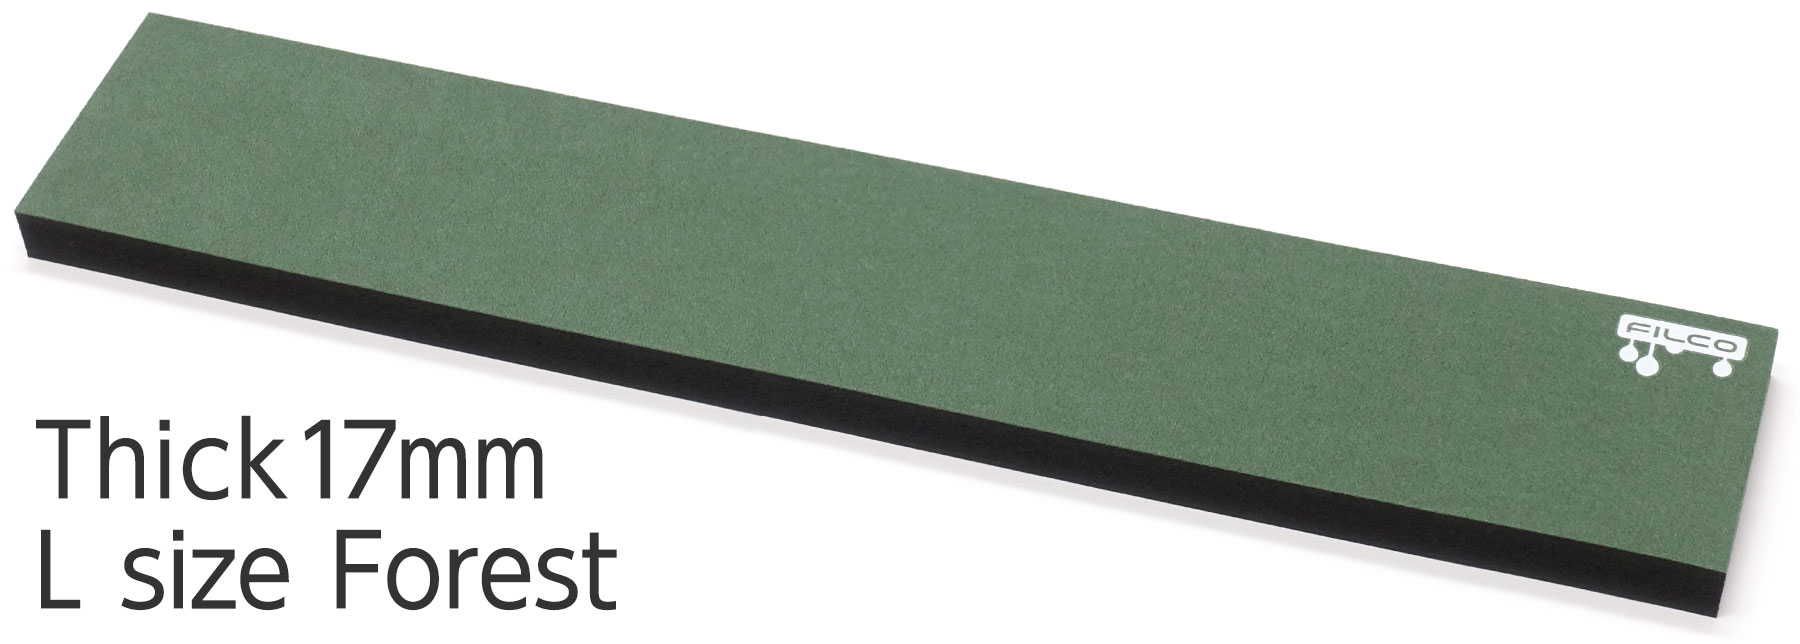 "FILCO Majestouch Wrist Rest ""Macaron"" Thick 17mm / L size / Forest"